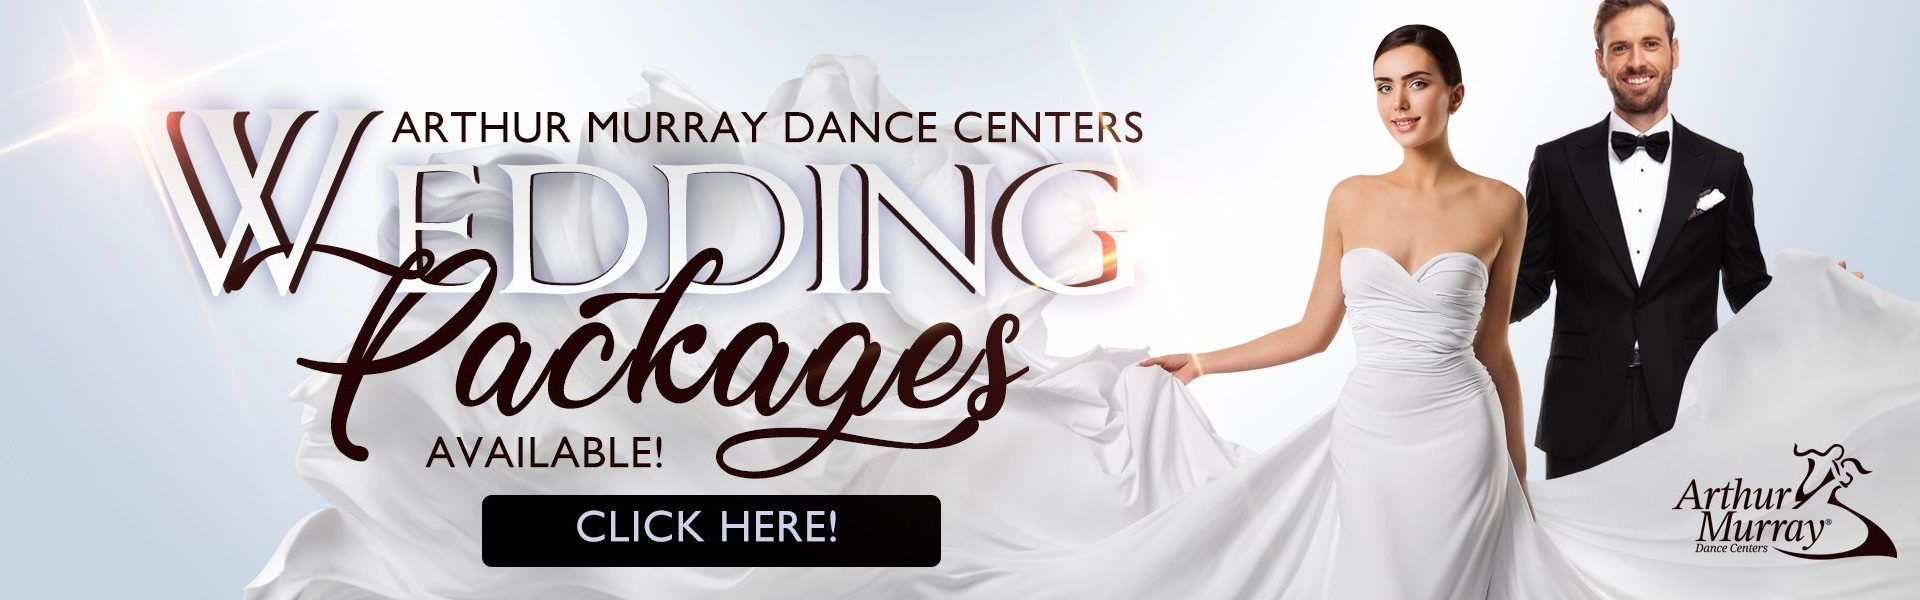 Arthur Murray Baltimore Wedding Dance Lessons